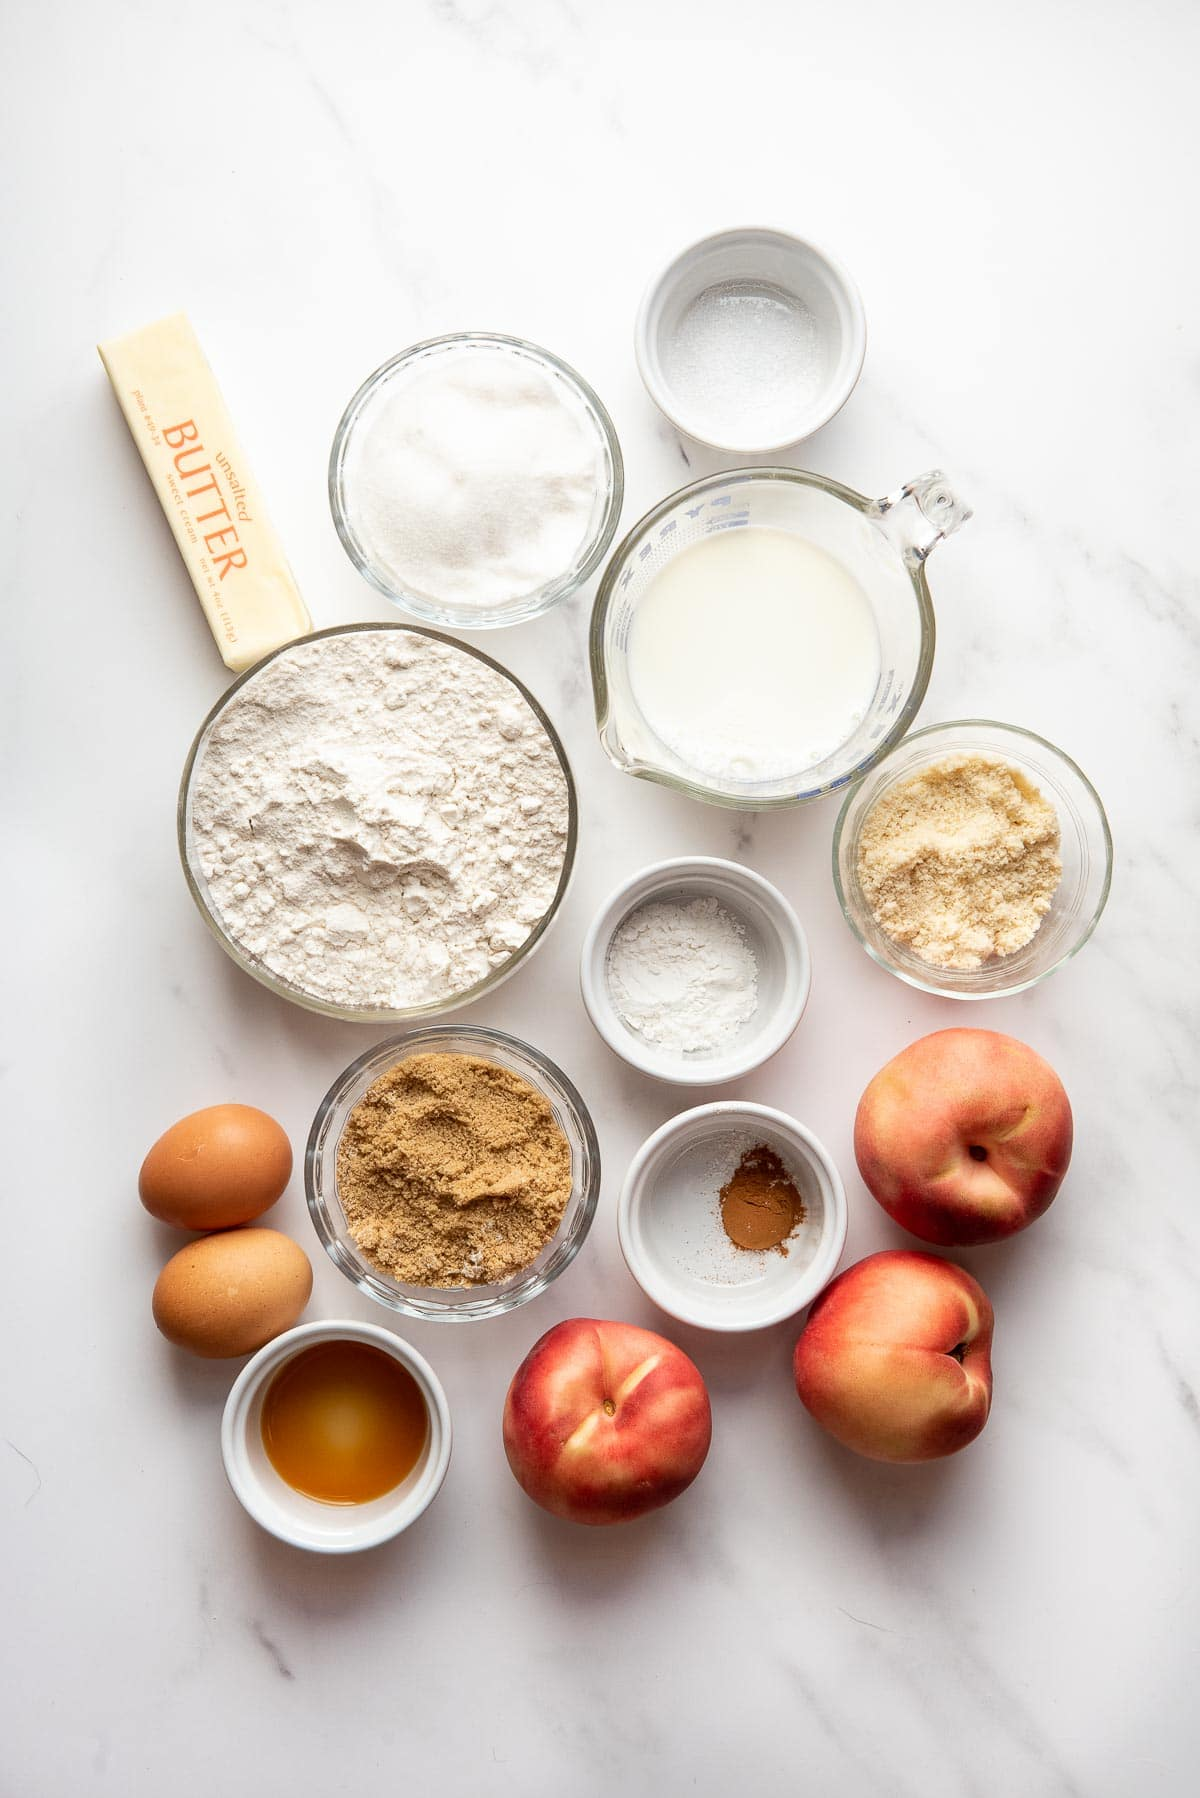 peach upside down cake ingredients